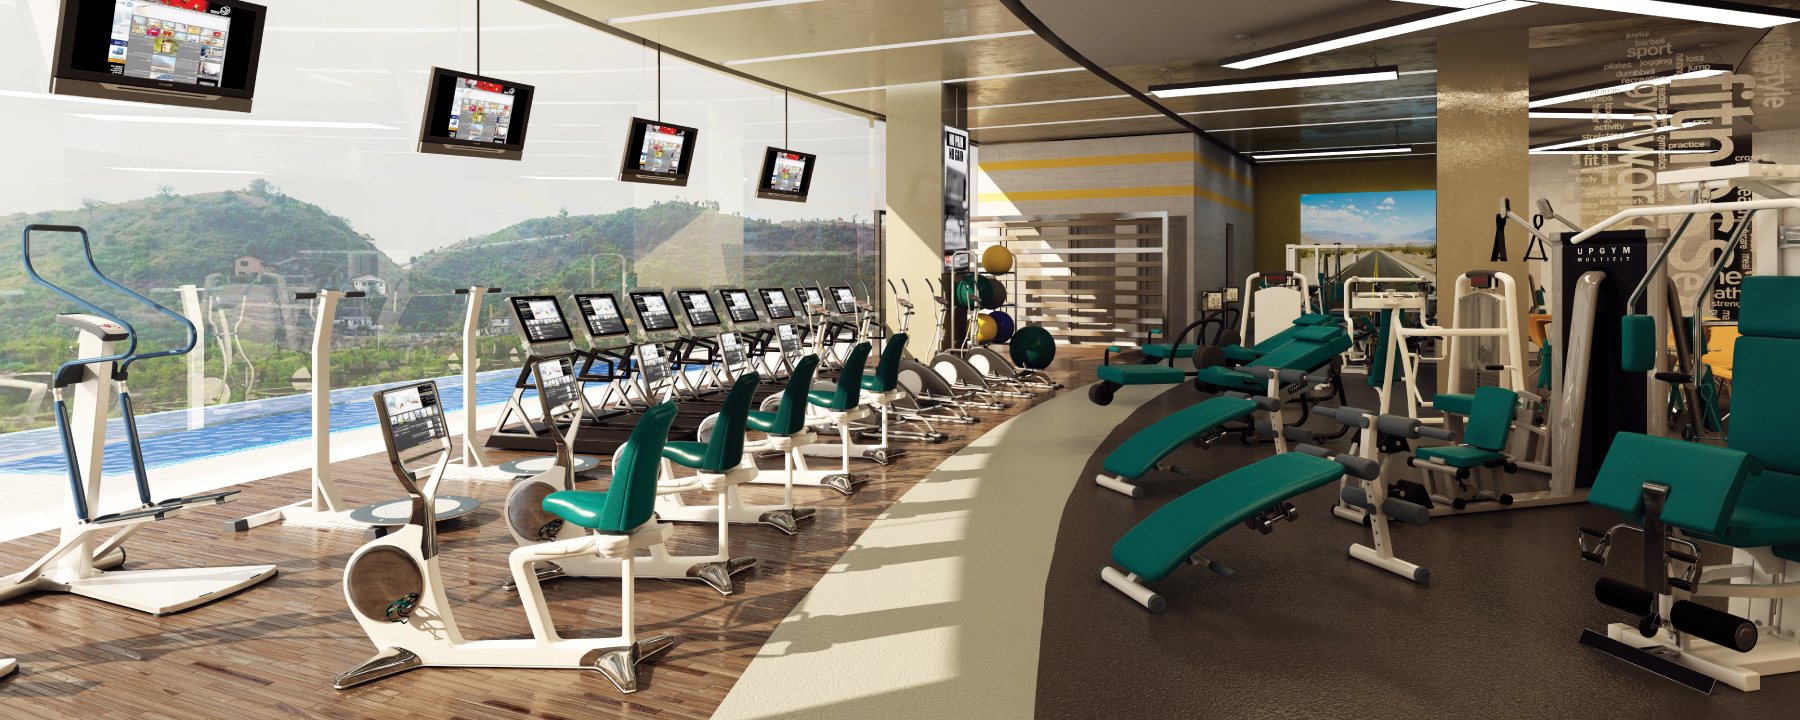 Montviro - Health & Fitness Center